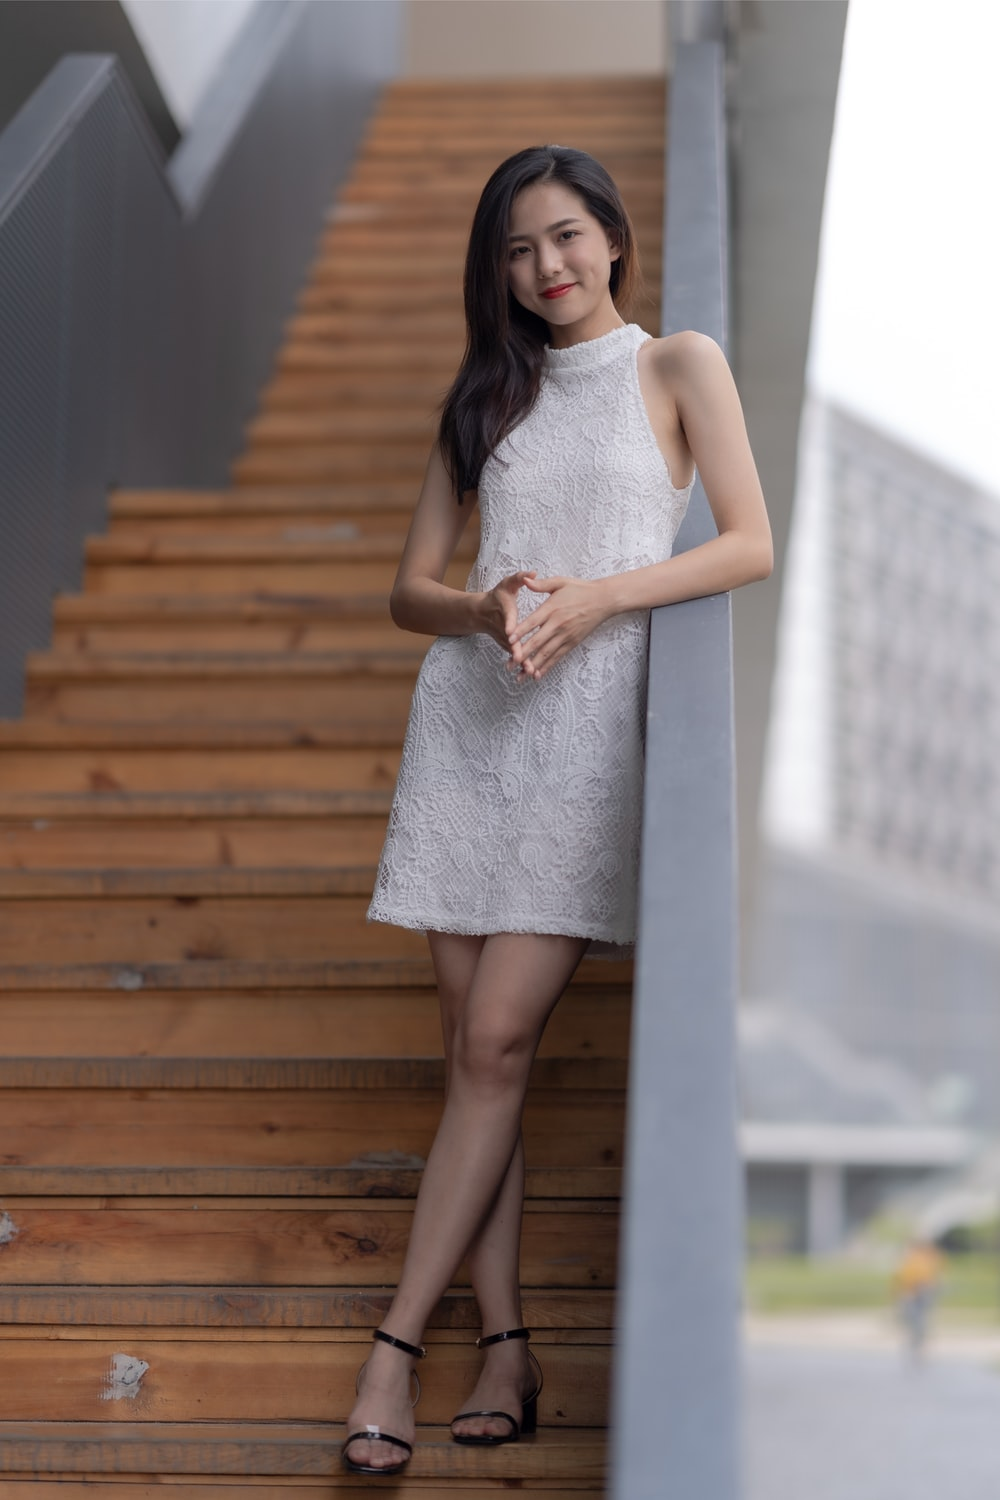 woman standing on stairs